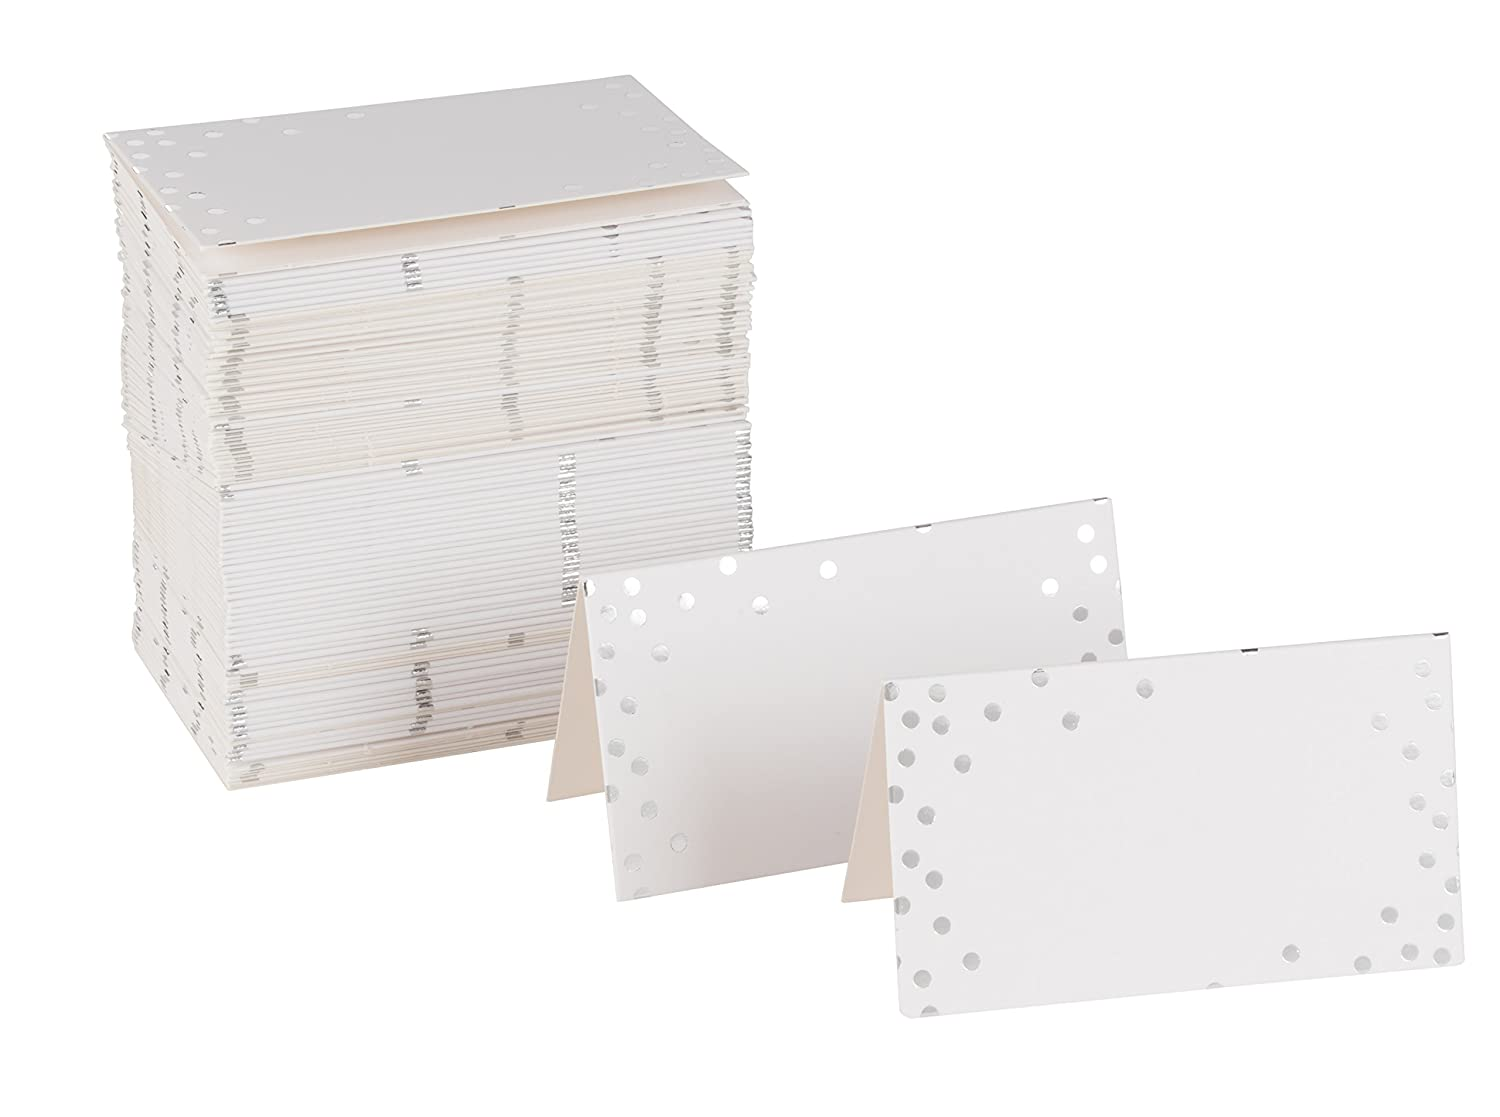 Best Paper Greetings Place Cards - 100-Pack Small Tent Cards with Silver Foil Polka Dots, Foldover Table Placecards, Perfect for Weddings, Banquets, Events, Folded 2 x 3.5 Inches Juvale